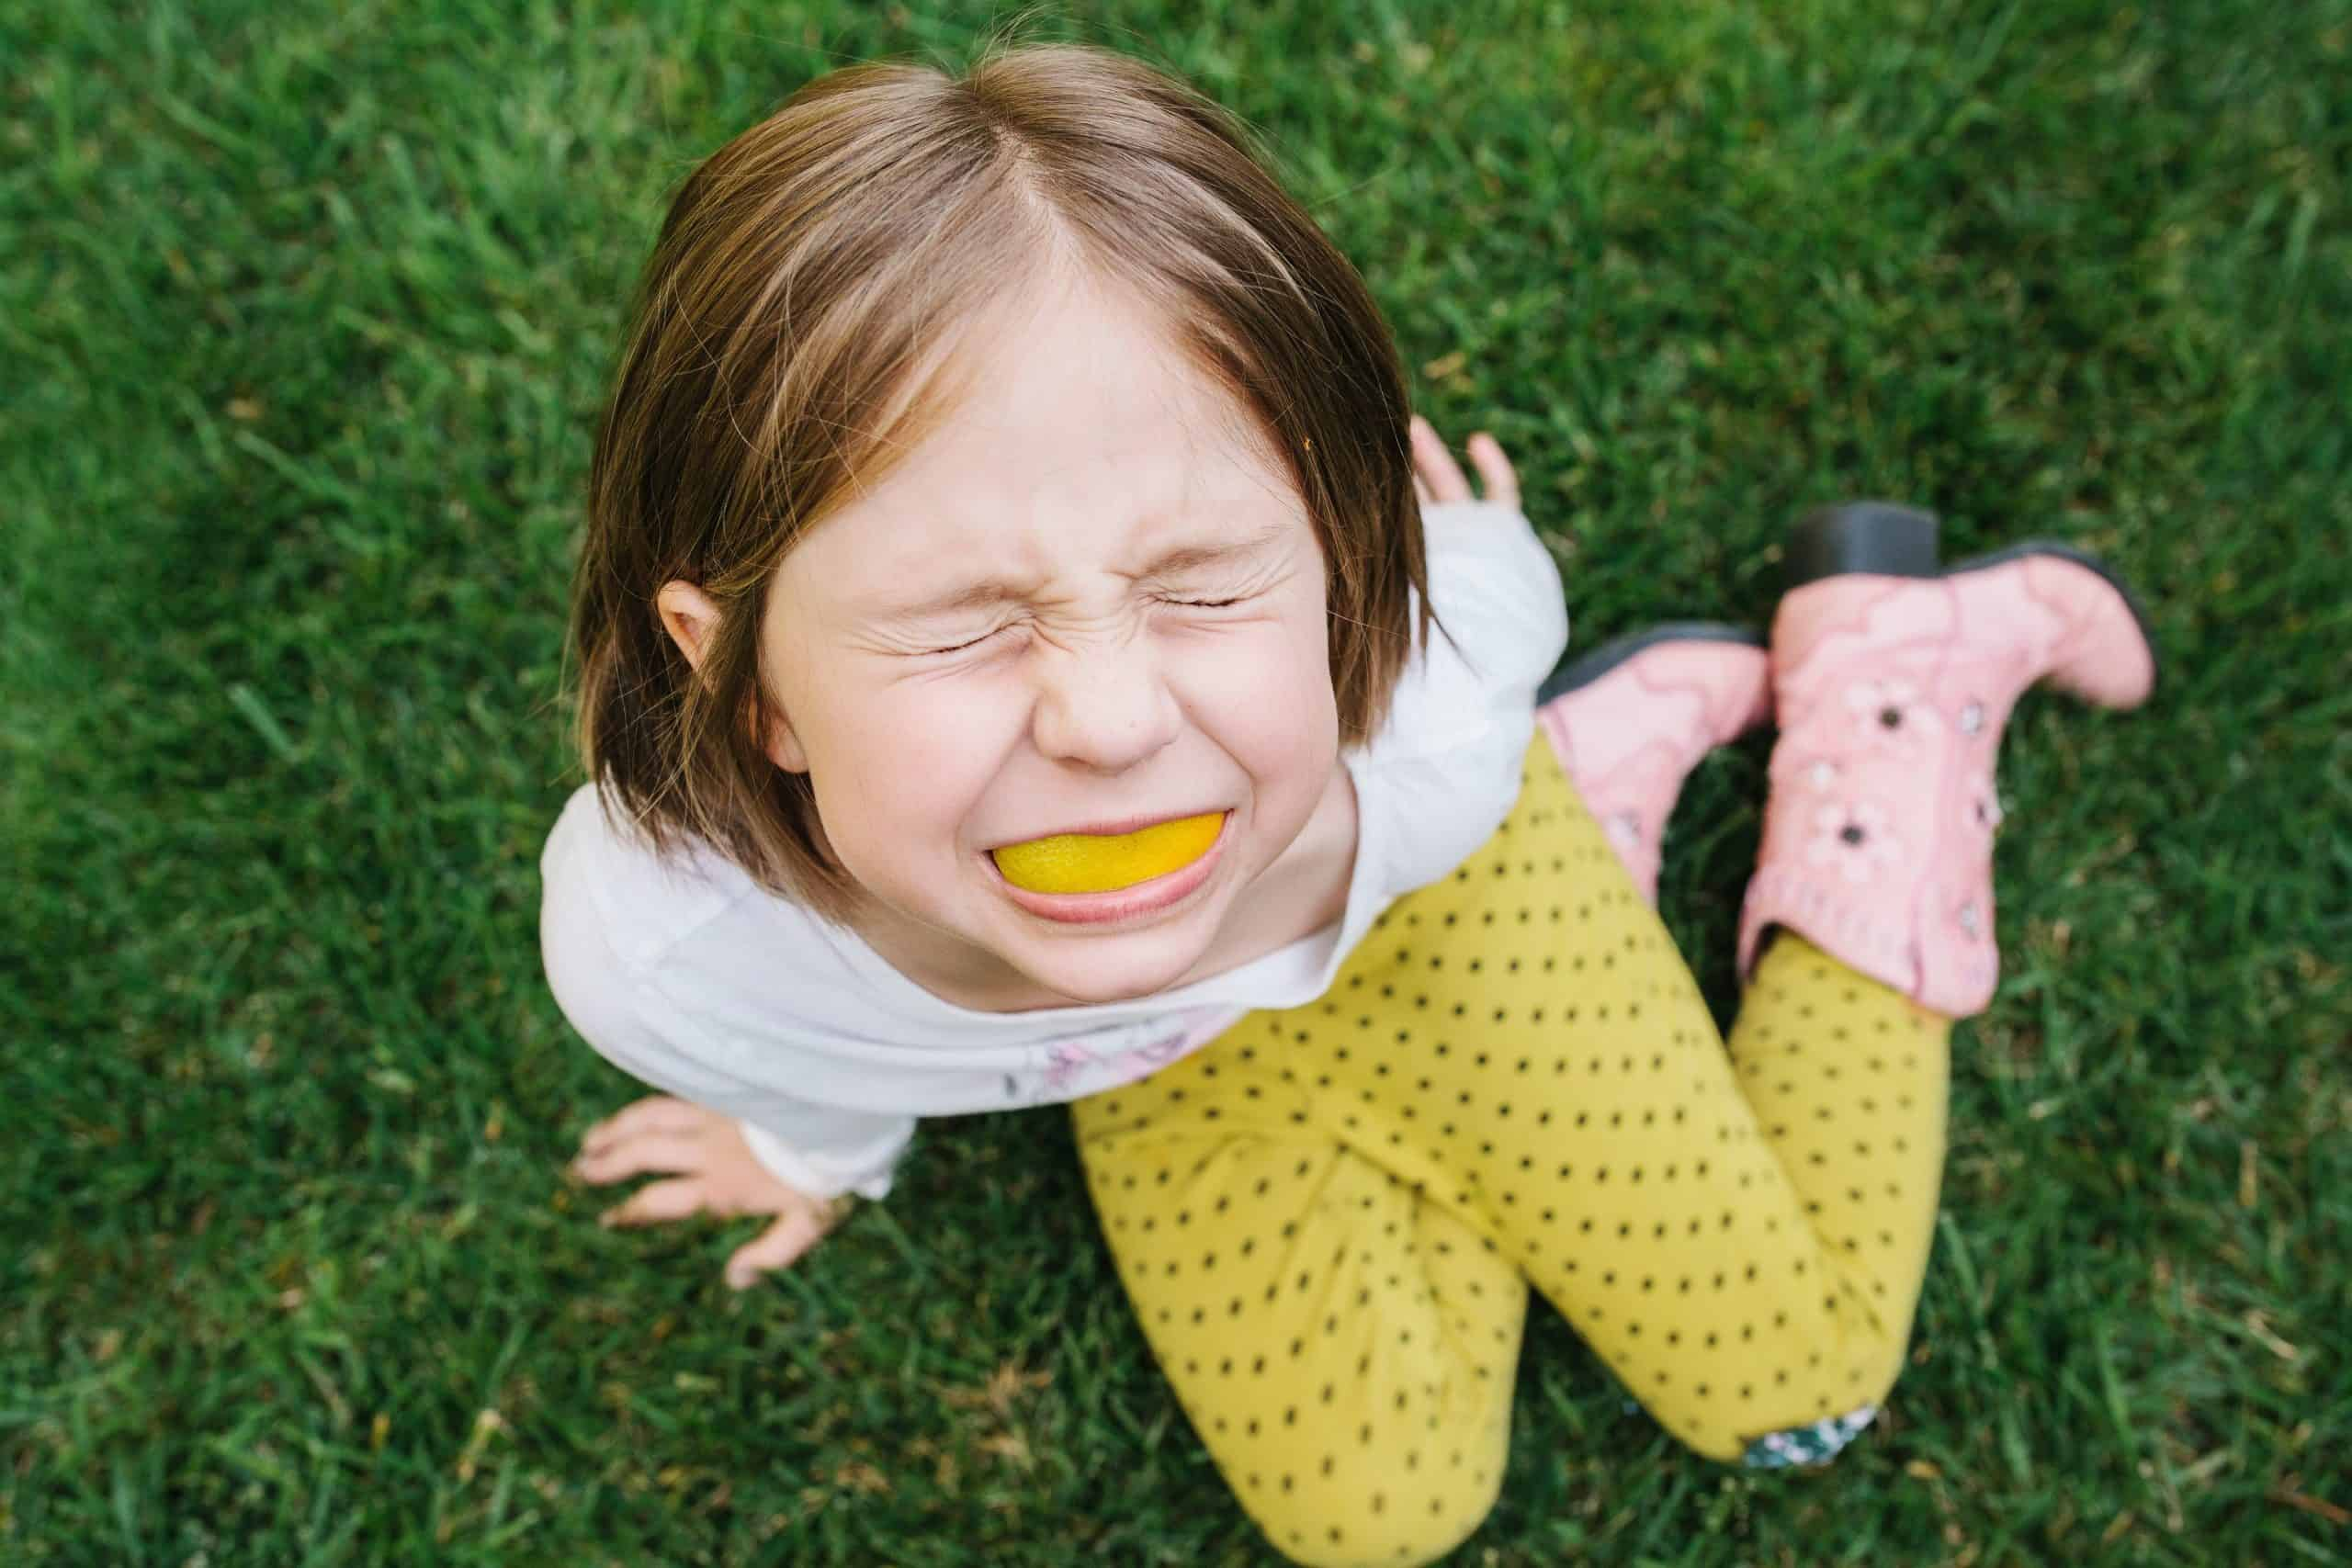 Close photograph of a girl with an orange peel in her mouth